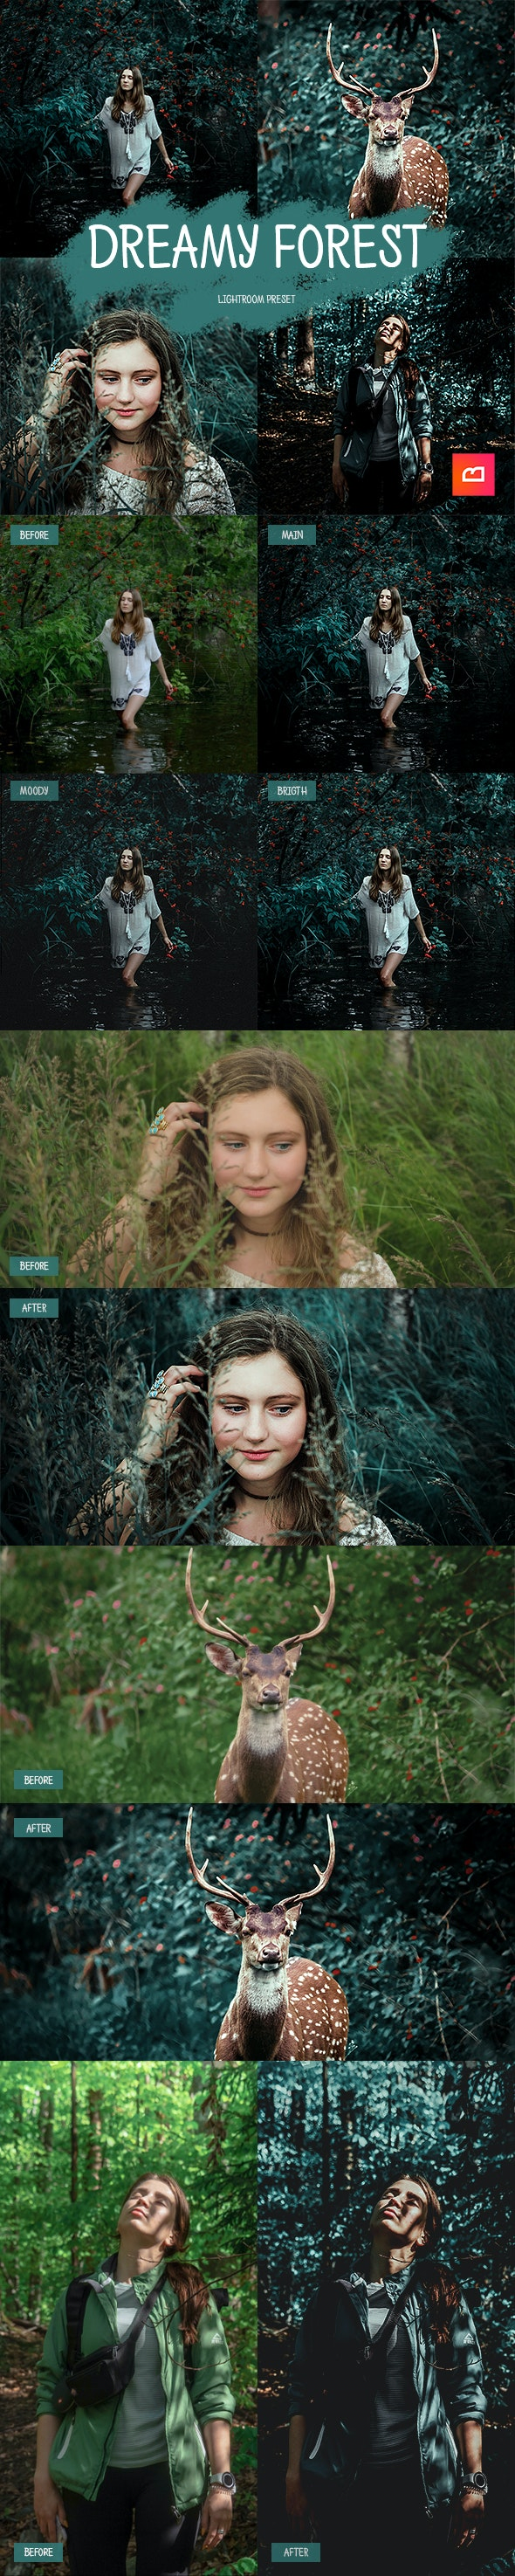 1+2 Dreamy Forest Lightroom Preset - Lightroom Presets Add-ons